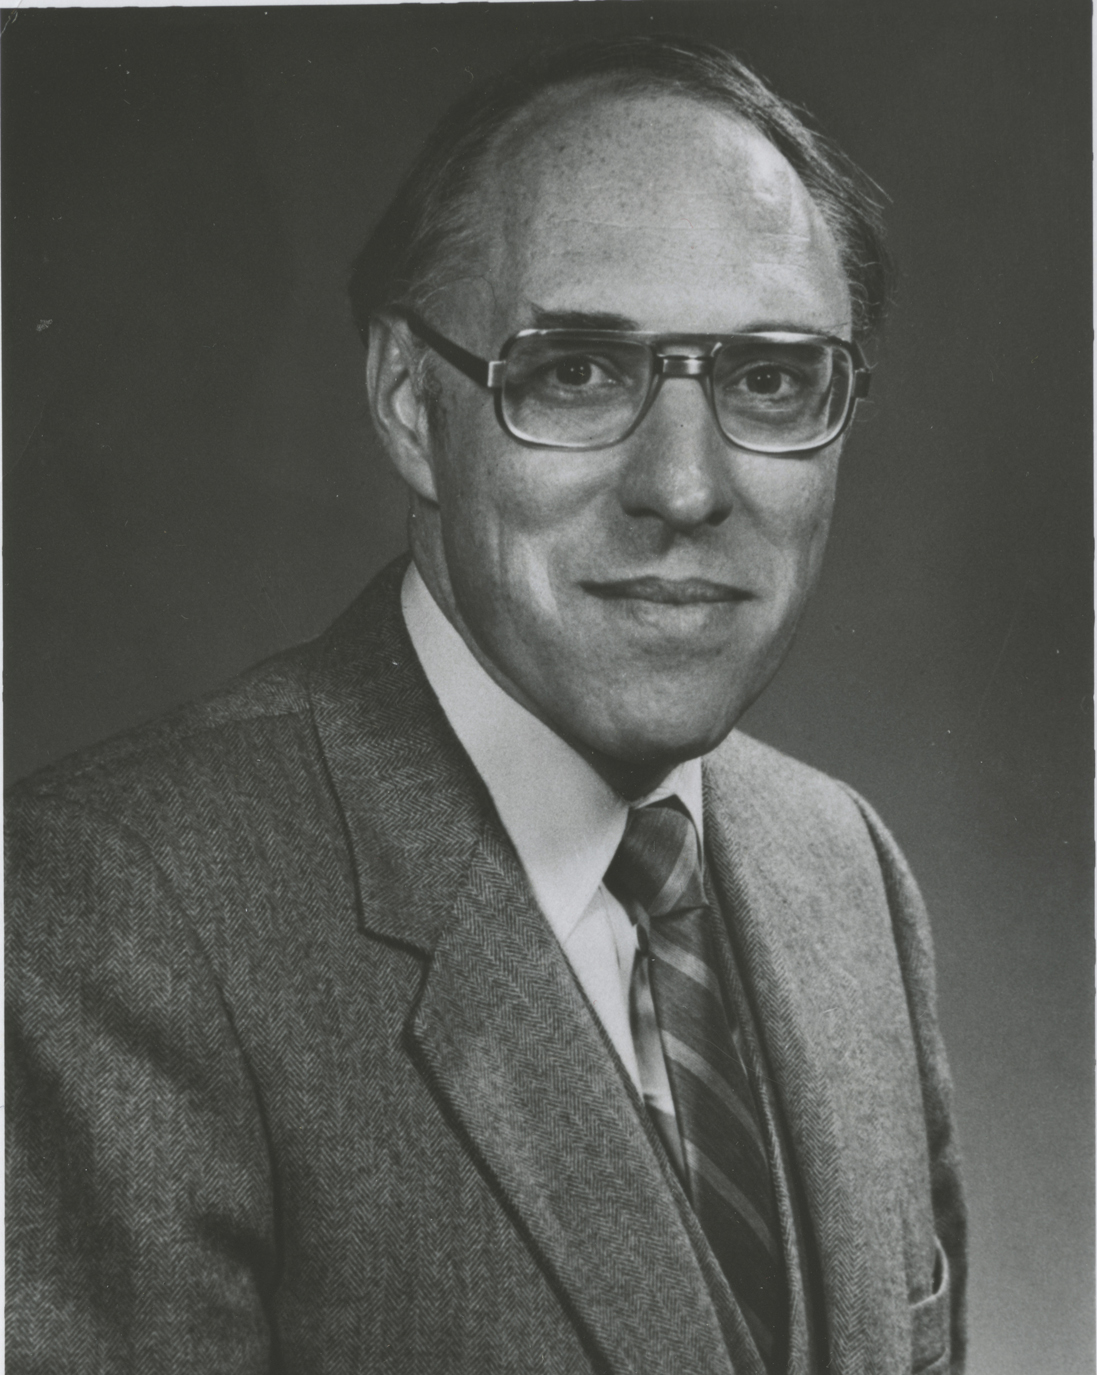 Dr. Donald Zacharias